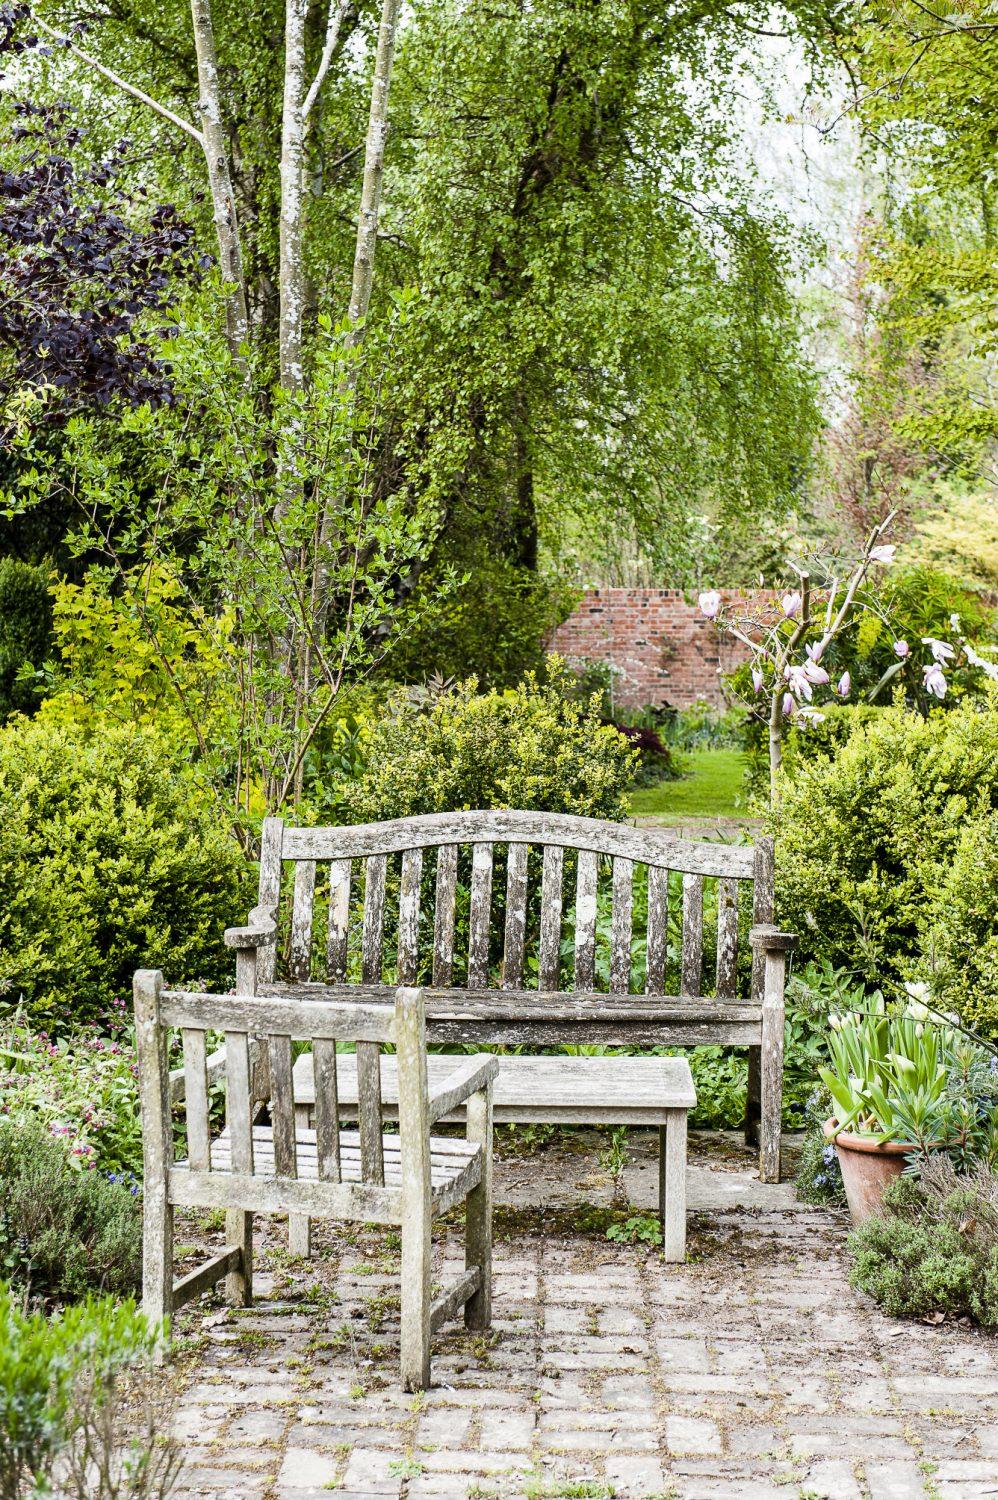 Andrew's garden blurs the line between cultivated and wild